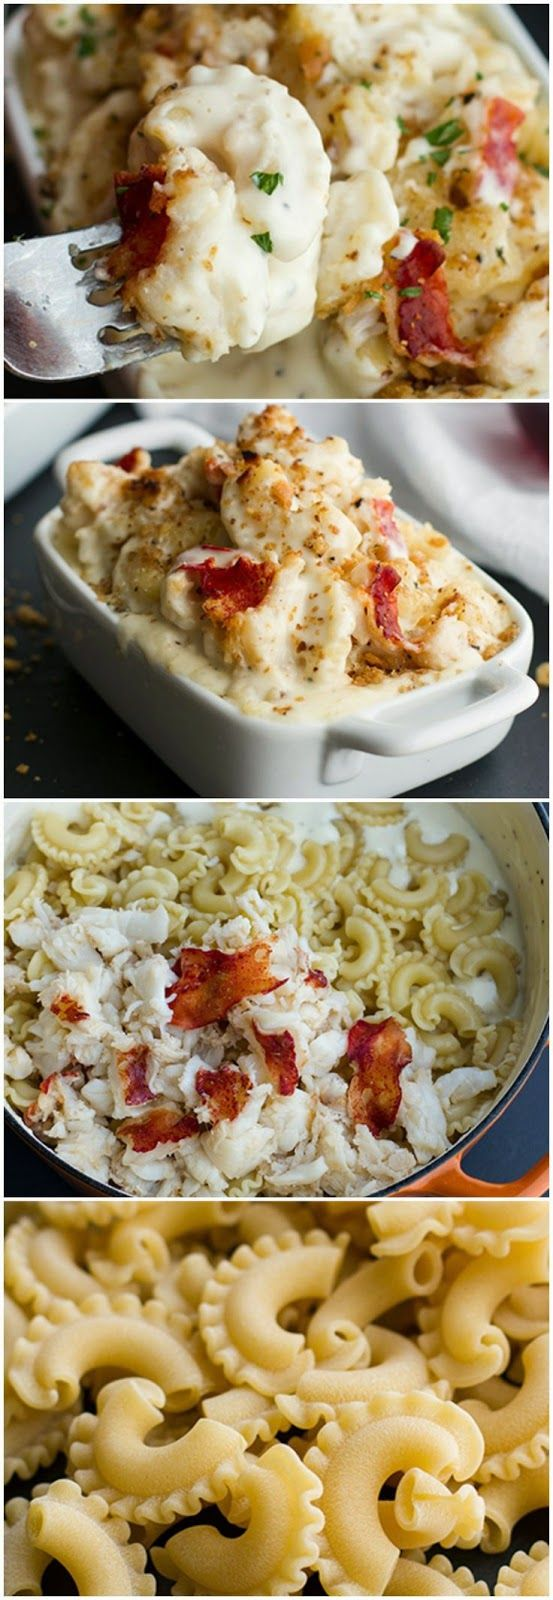 Lobster Mac and Cheese~I love lobster mac and cheese!! I could eat it everyday!!